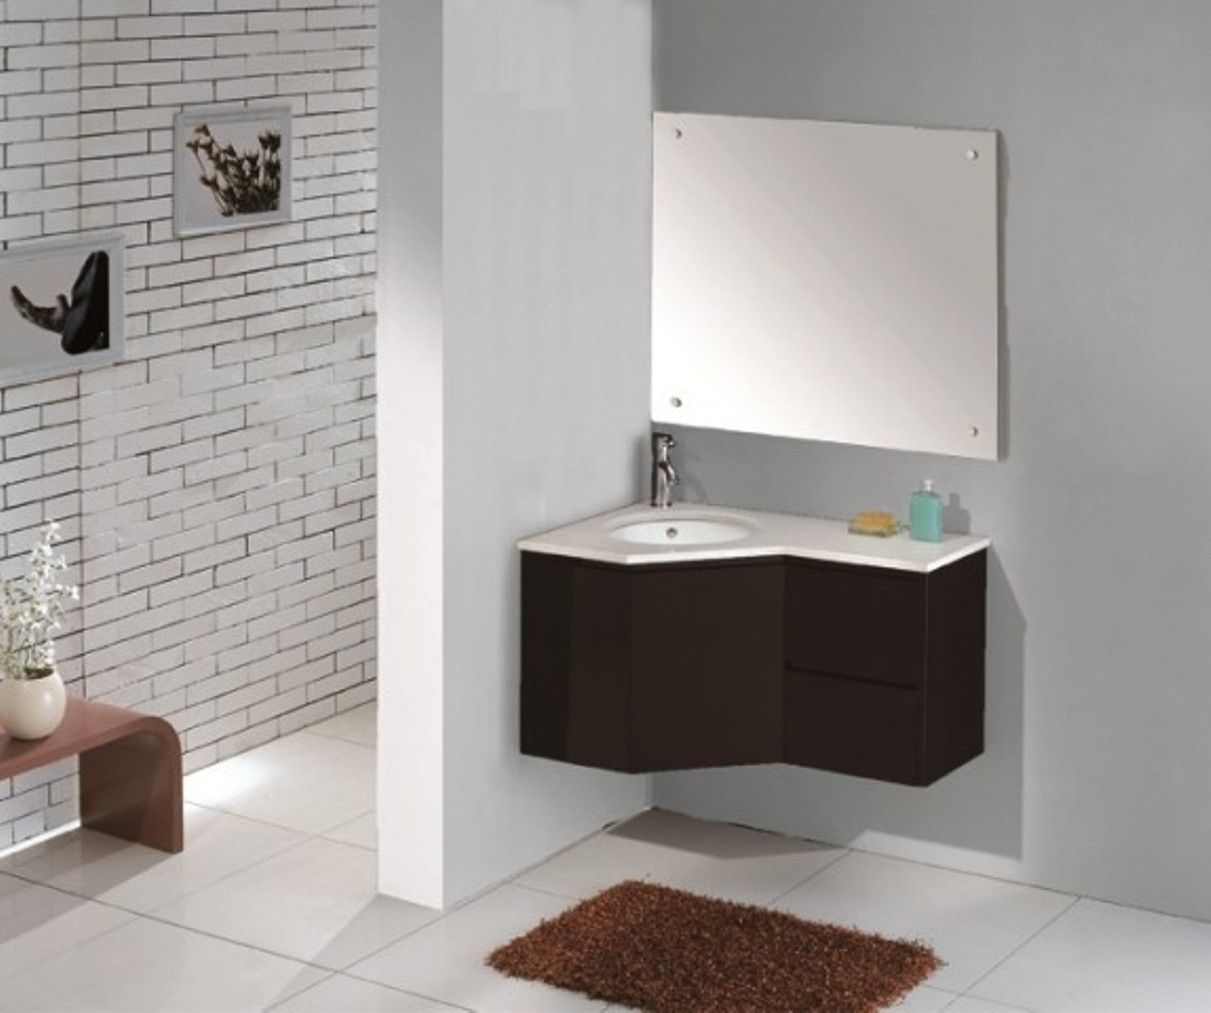 Bathroom Corner Vanity For Small Modern Black Contemporary With Sink Consoleirror